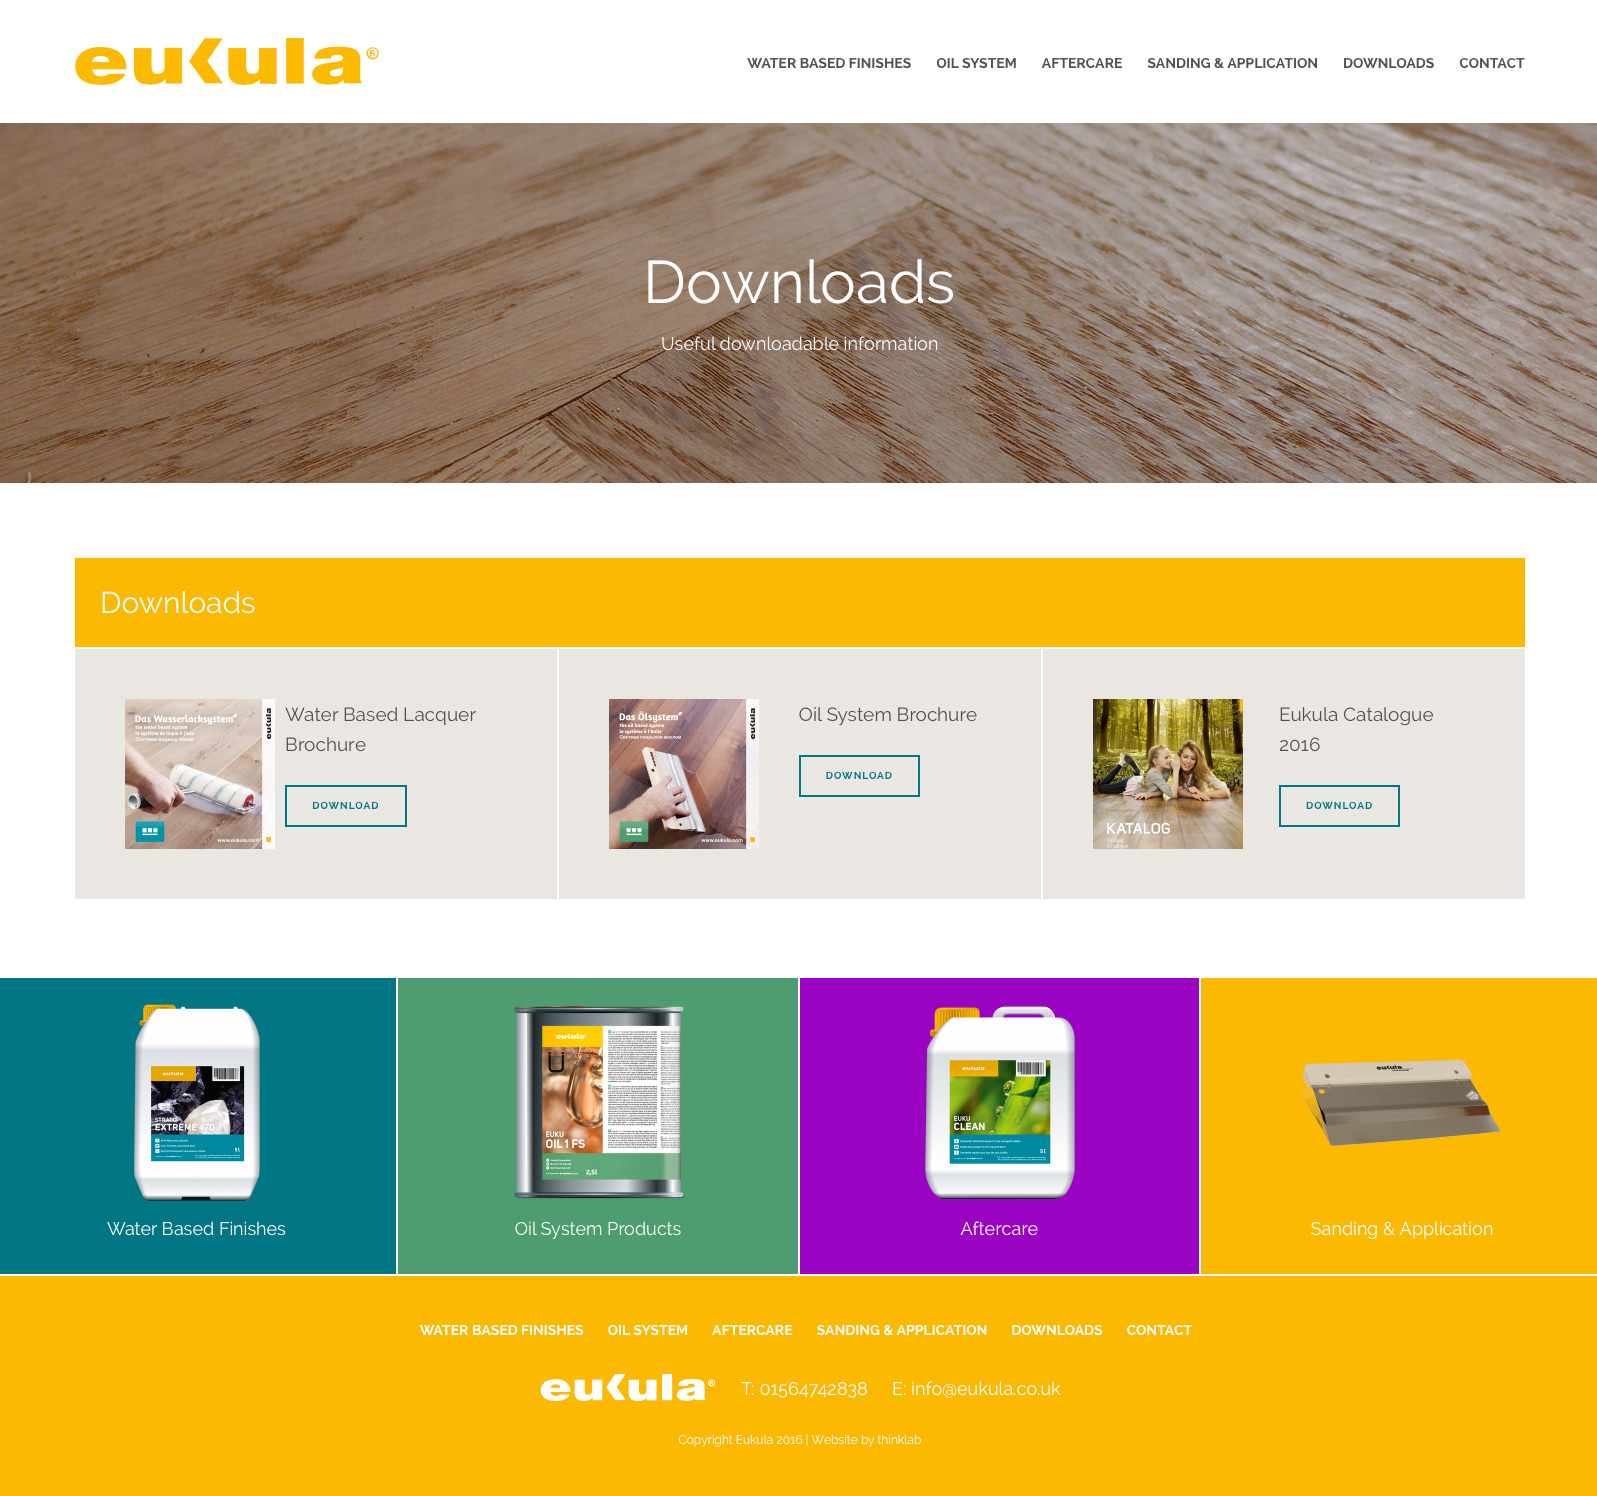 eukula website